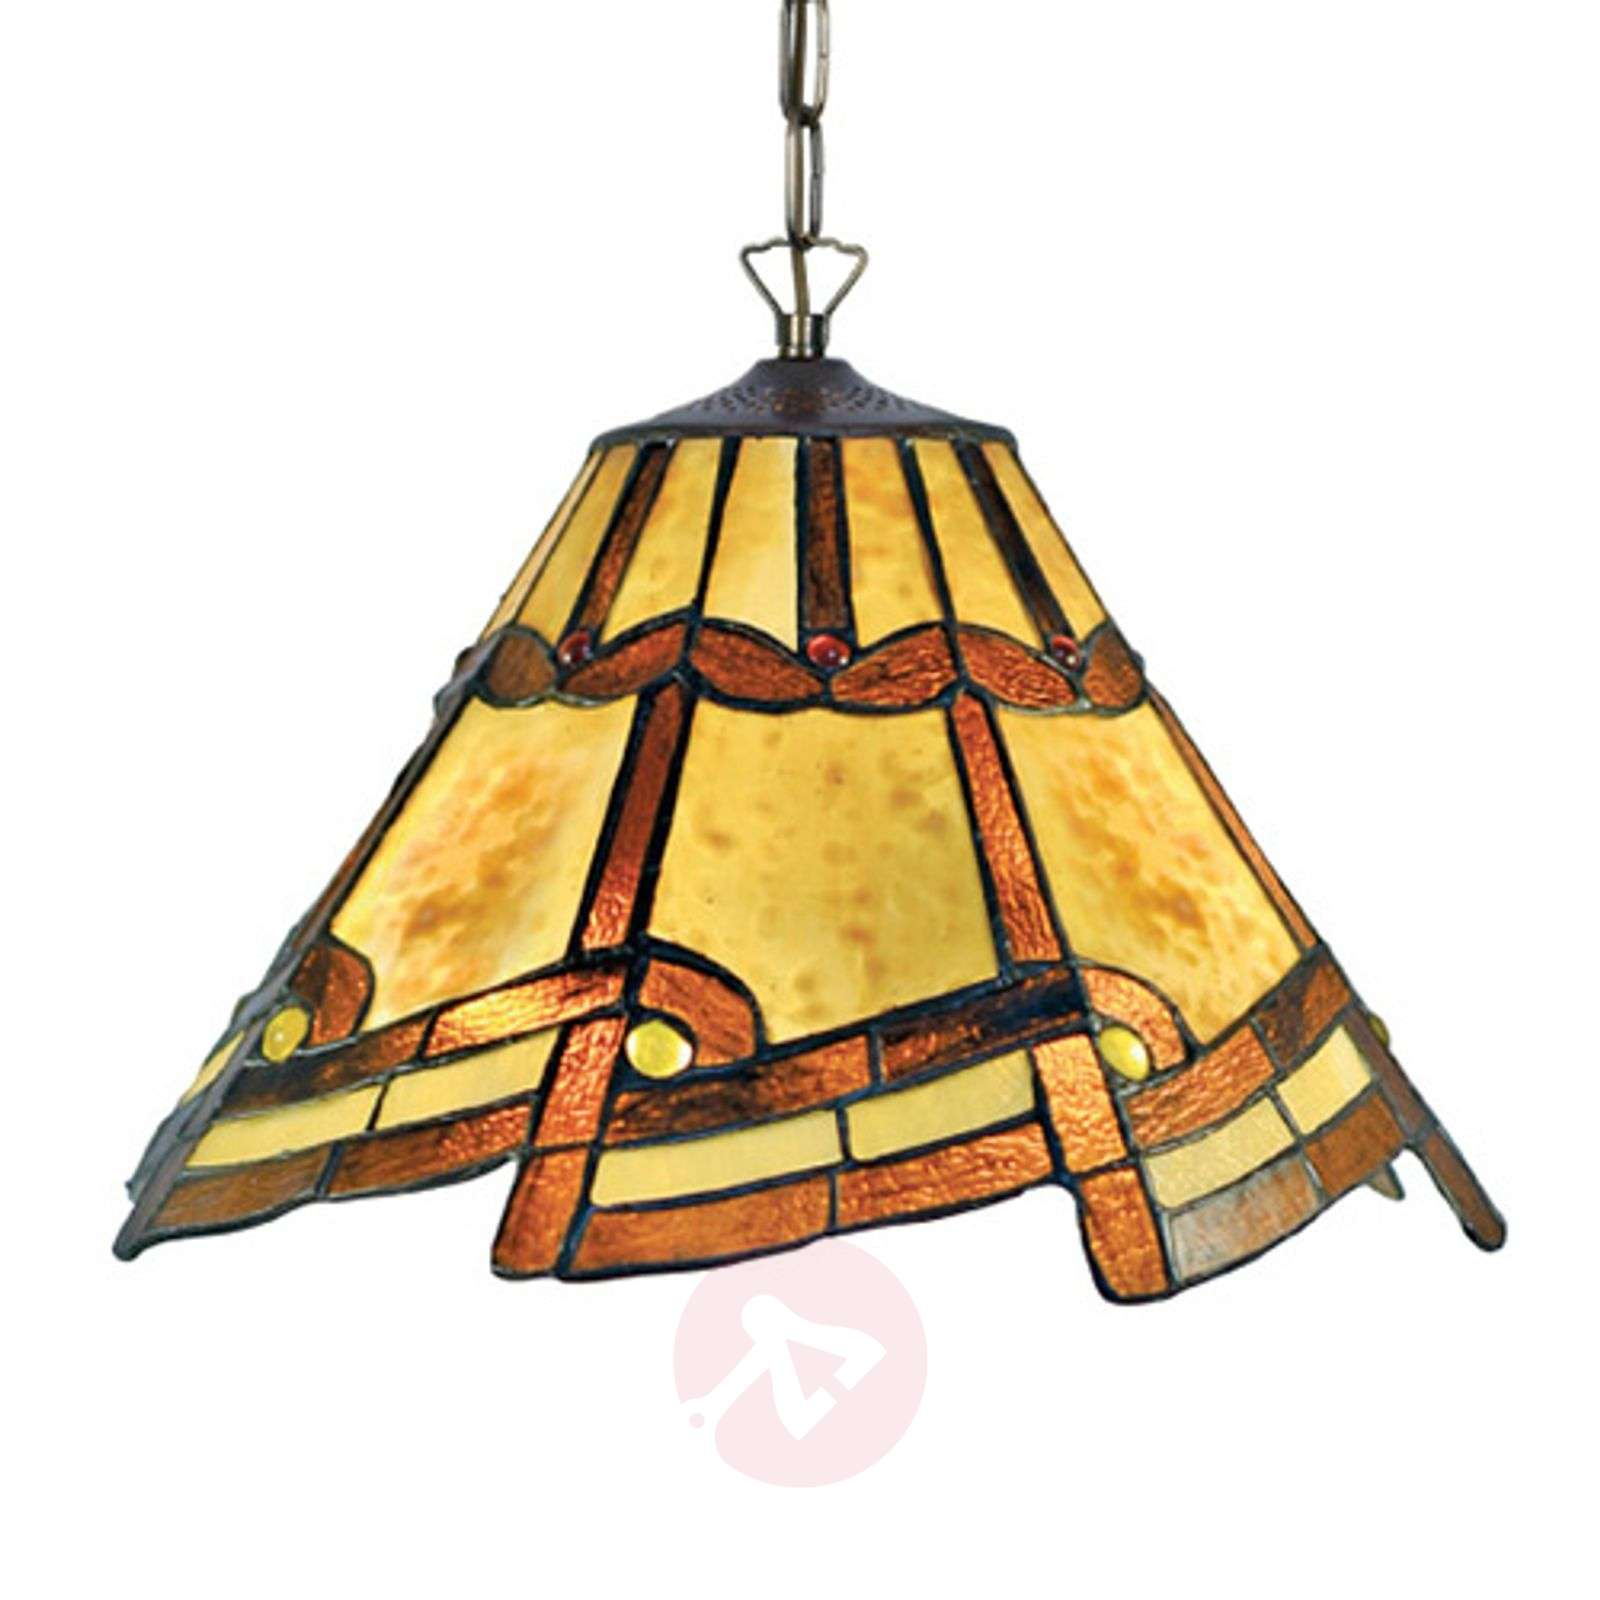 Lovely hanging light Parisa in the Tiffany style-1032317-01